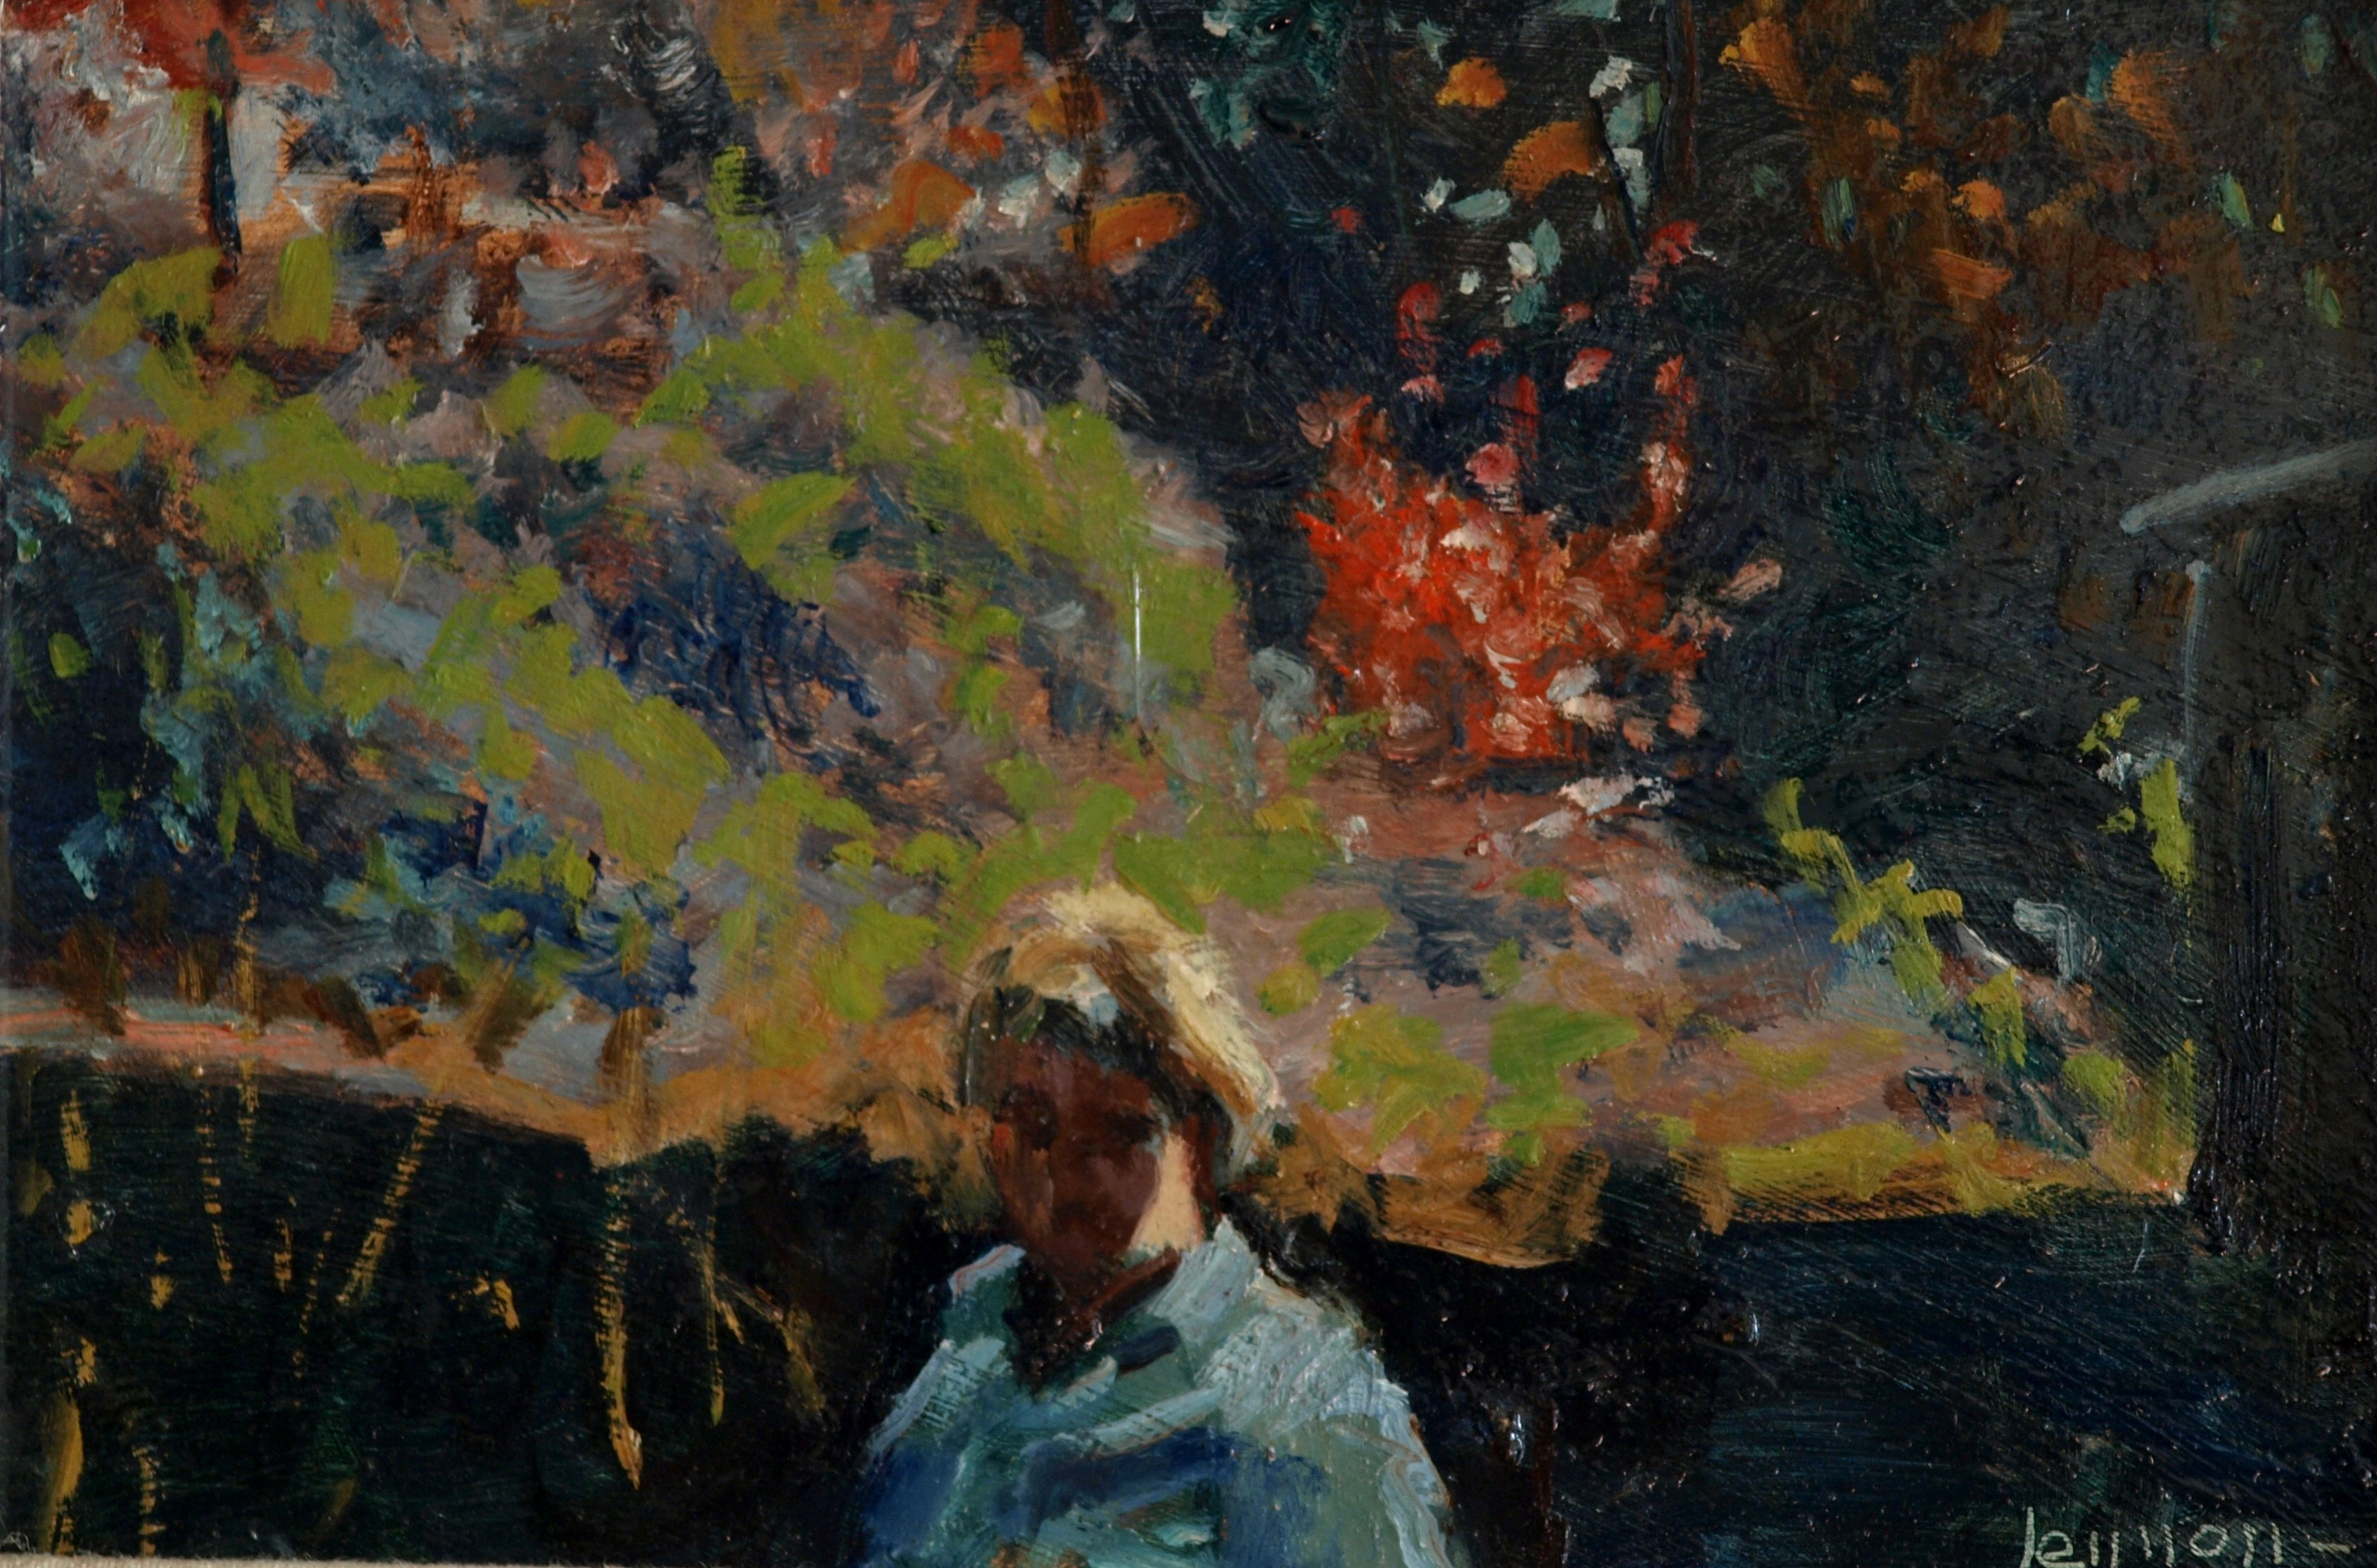 Foreground Figure, Oil on Panel, 8 x 12 Inches, by Bernard Lennon, $225